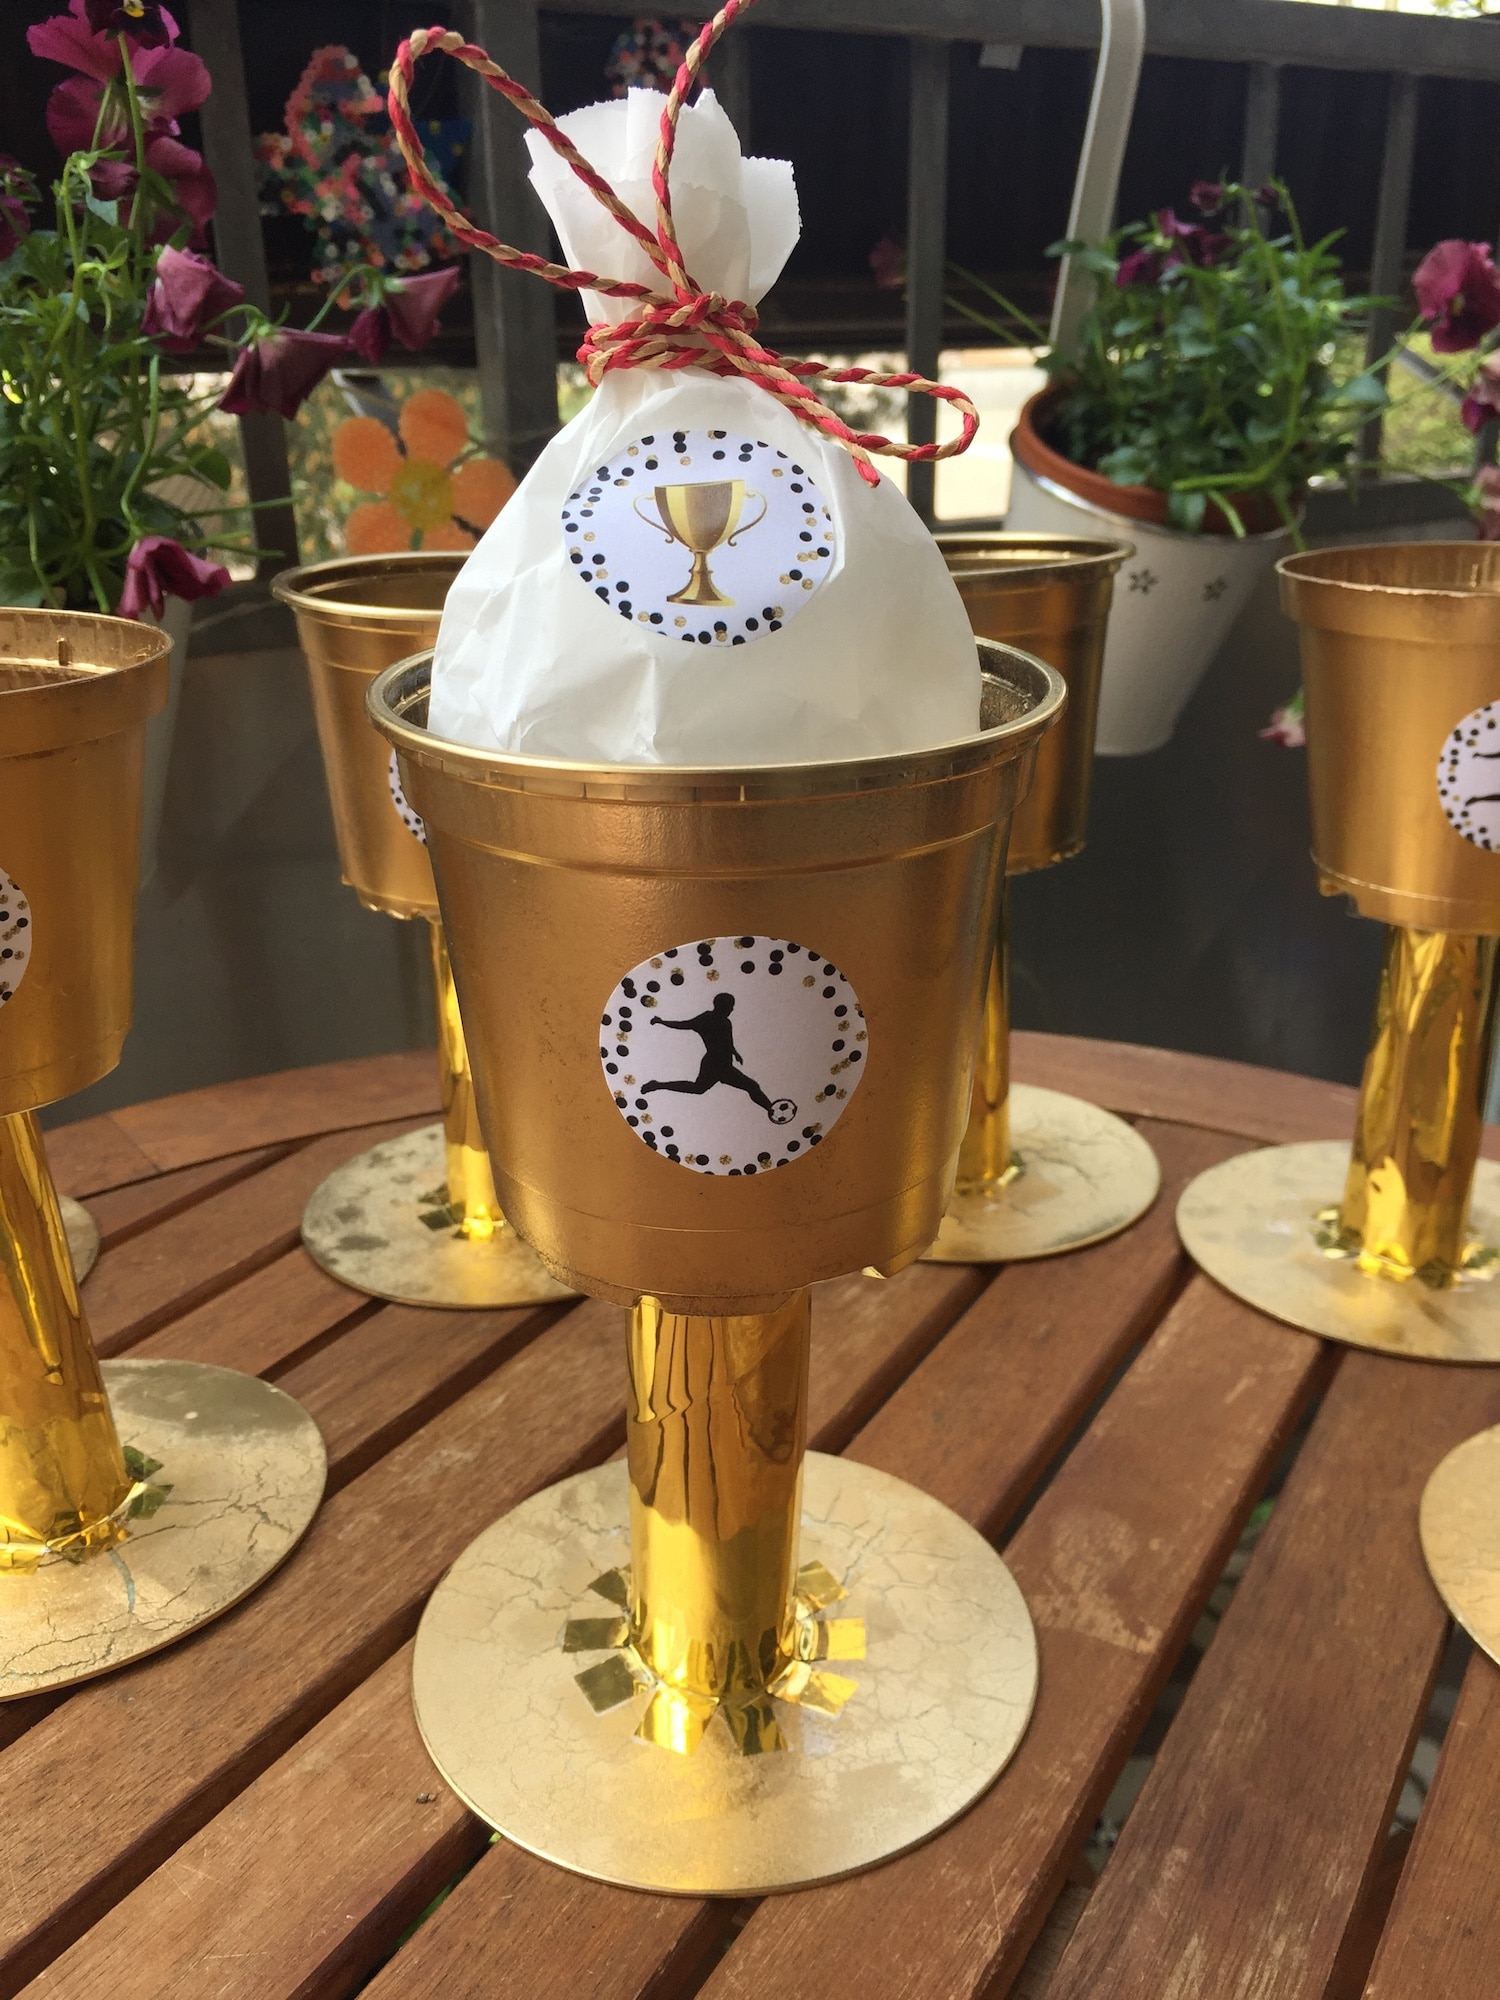 Upcycling Pokal selber machen Anleitung